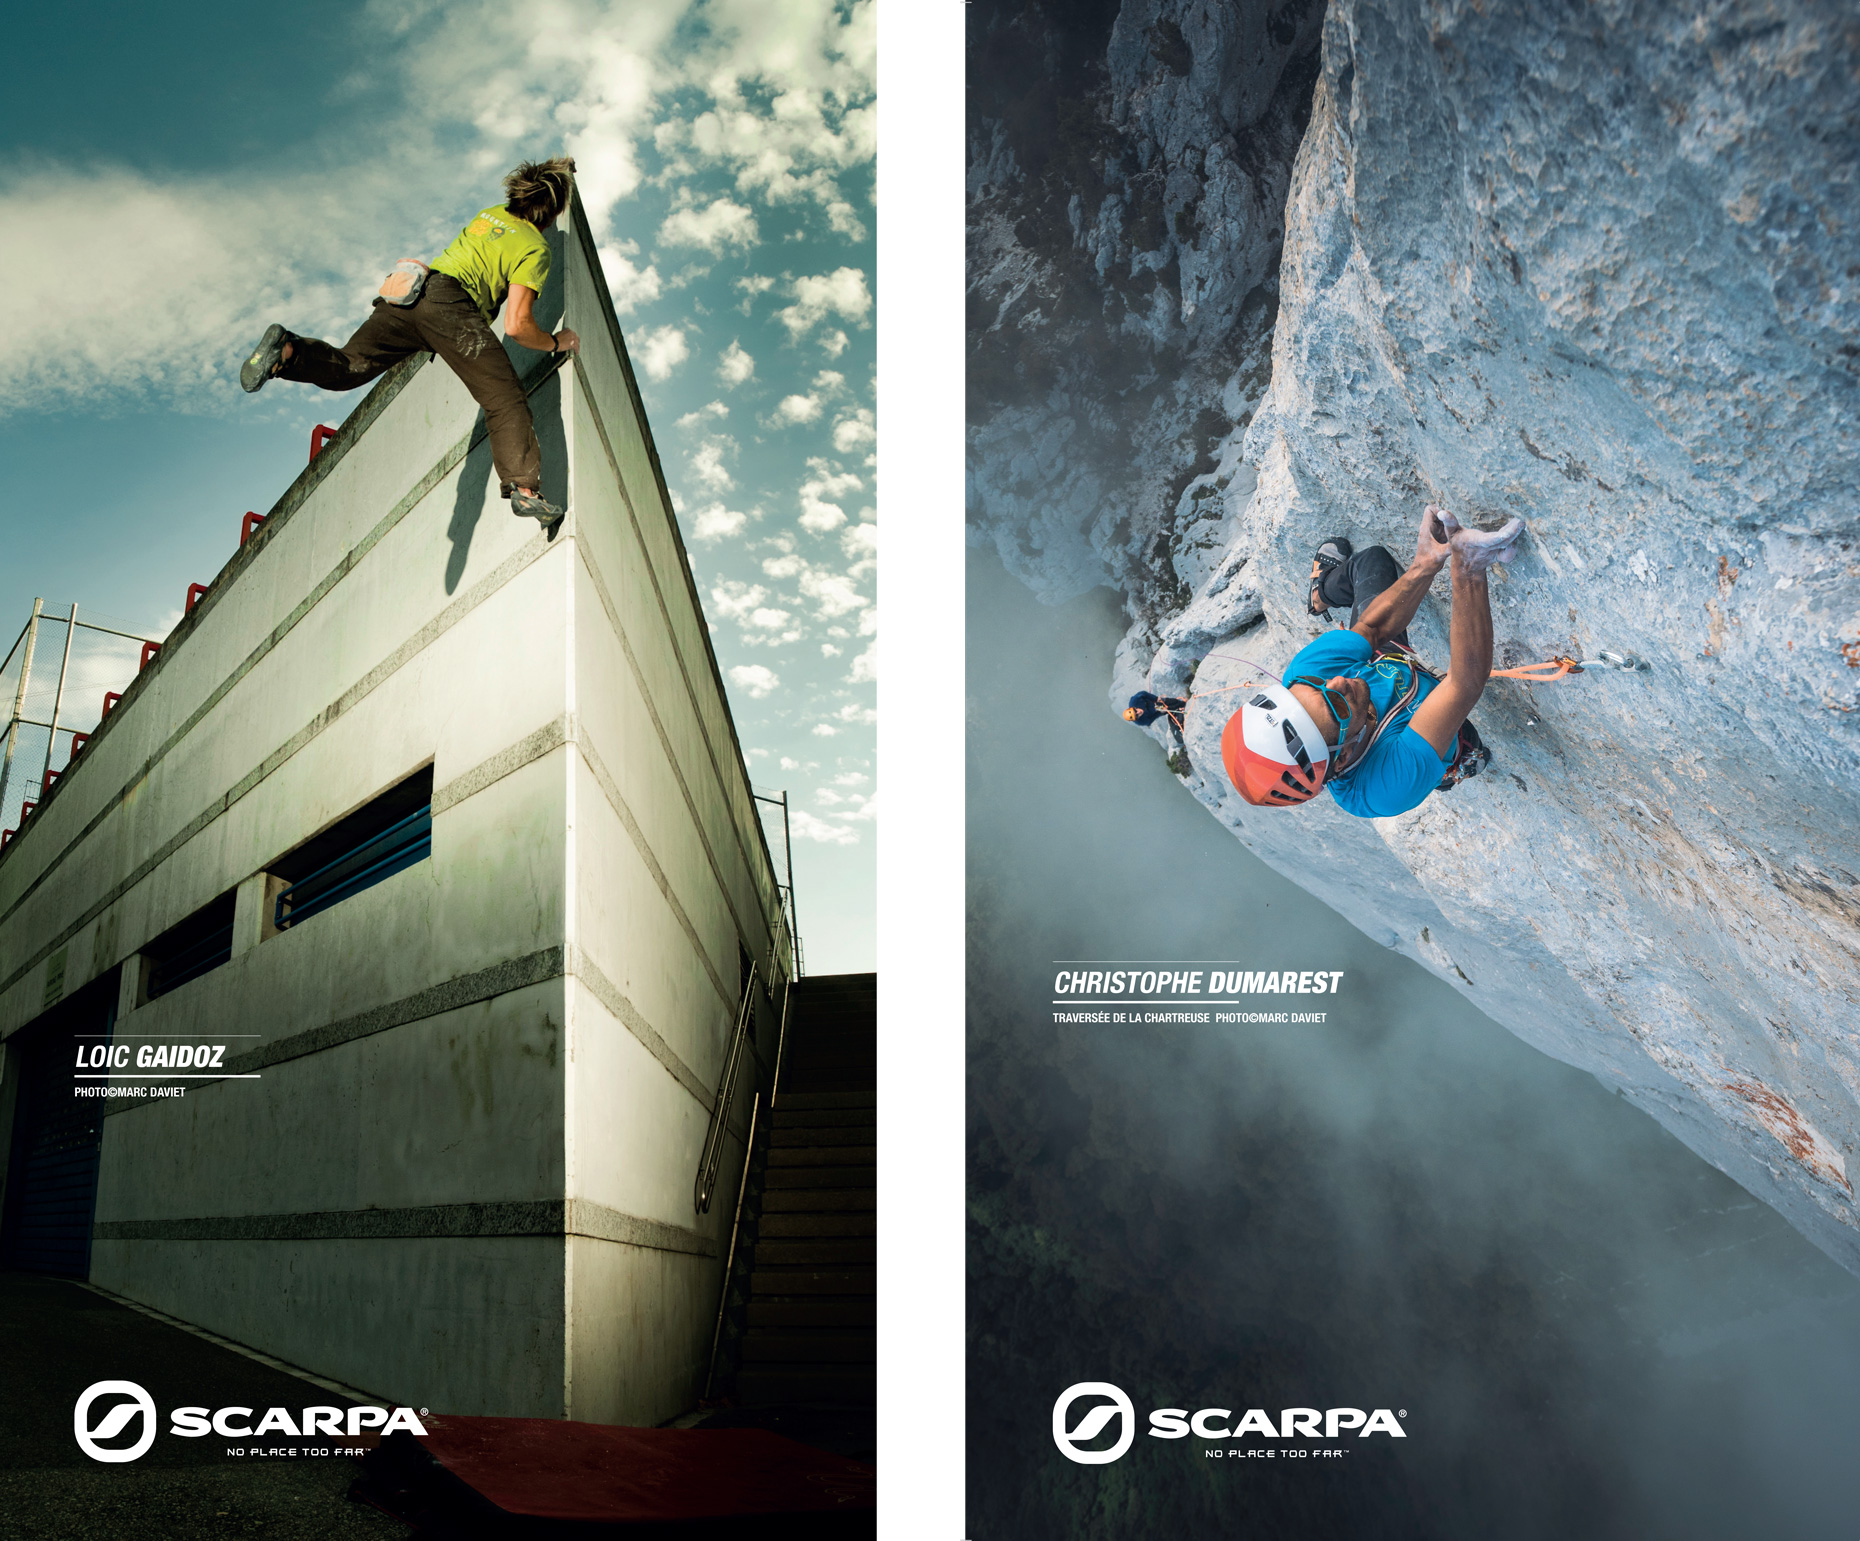 Scarpa - Advertising  - Marc Daviet Photography